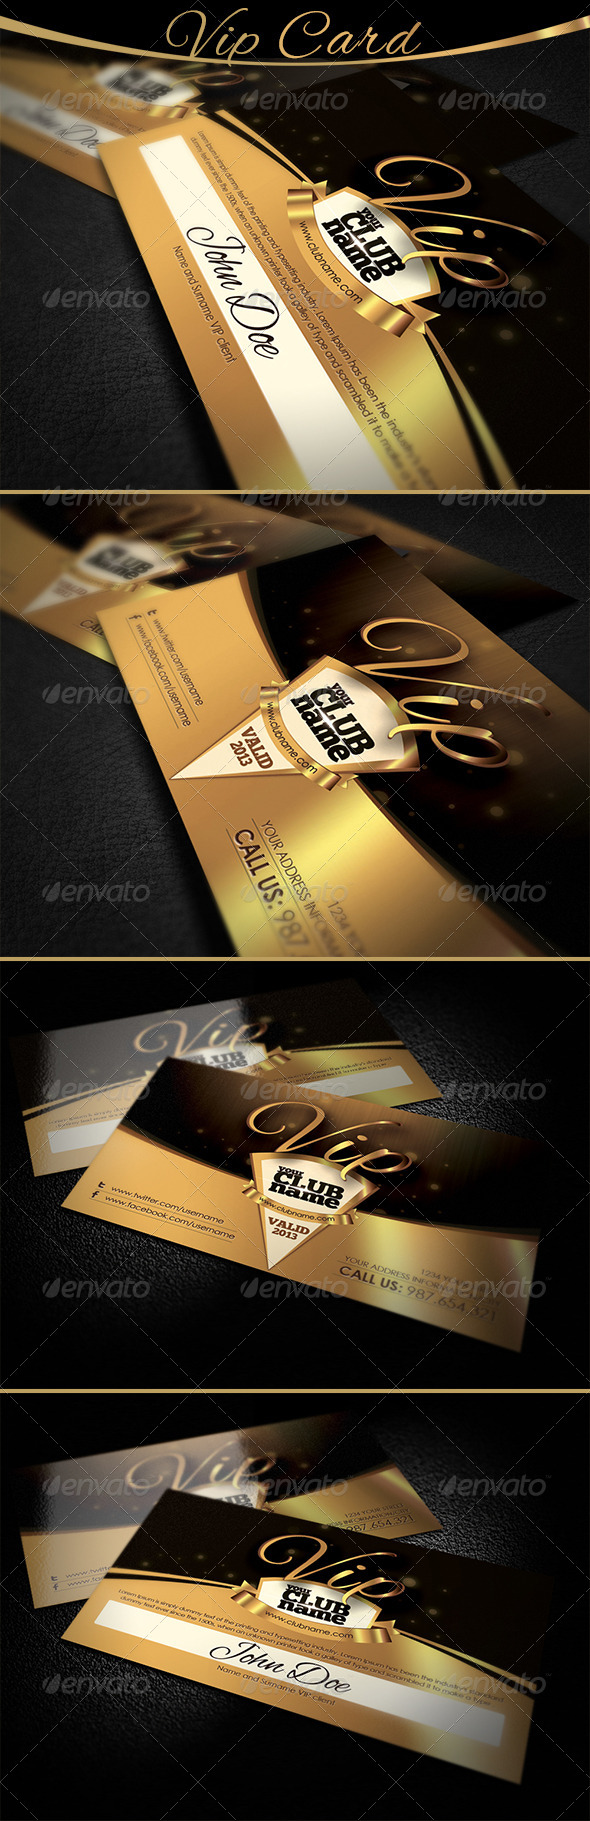 Vip Card - Loyalty Cards Cards & Invites